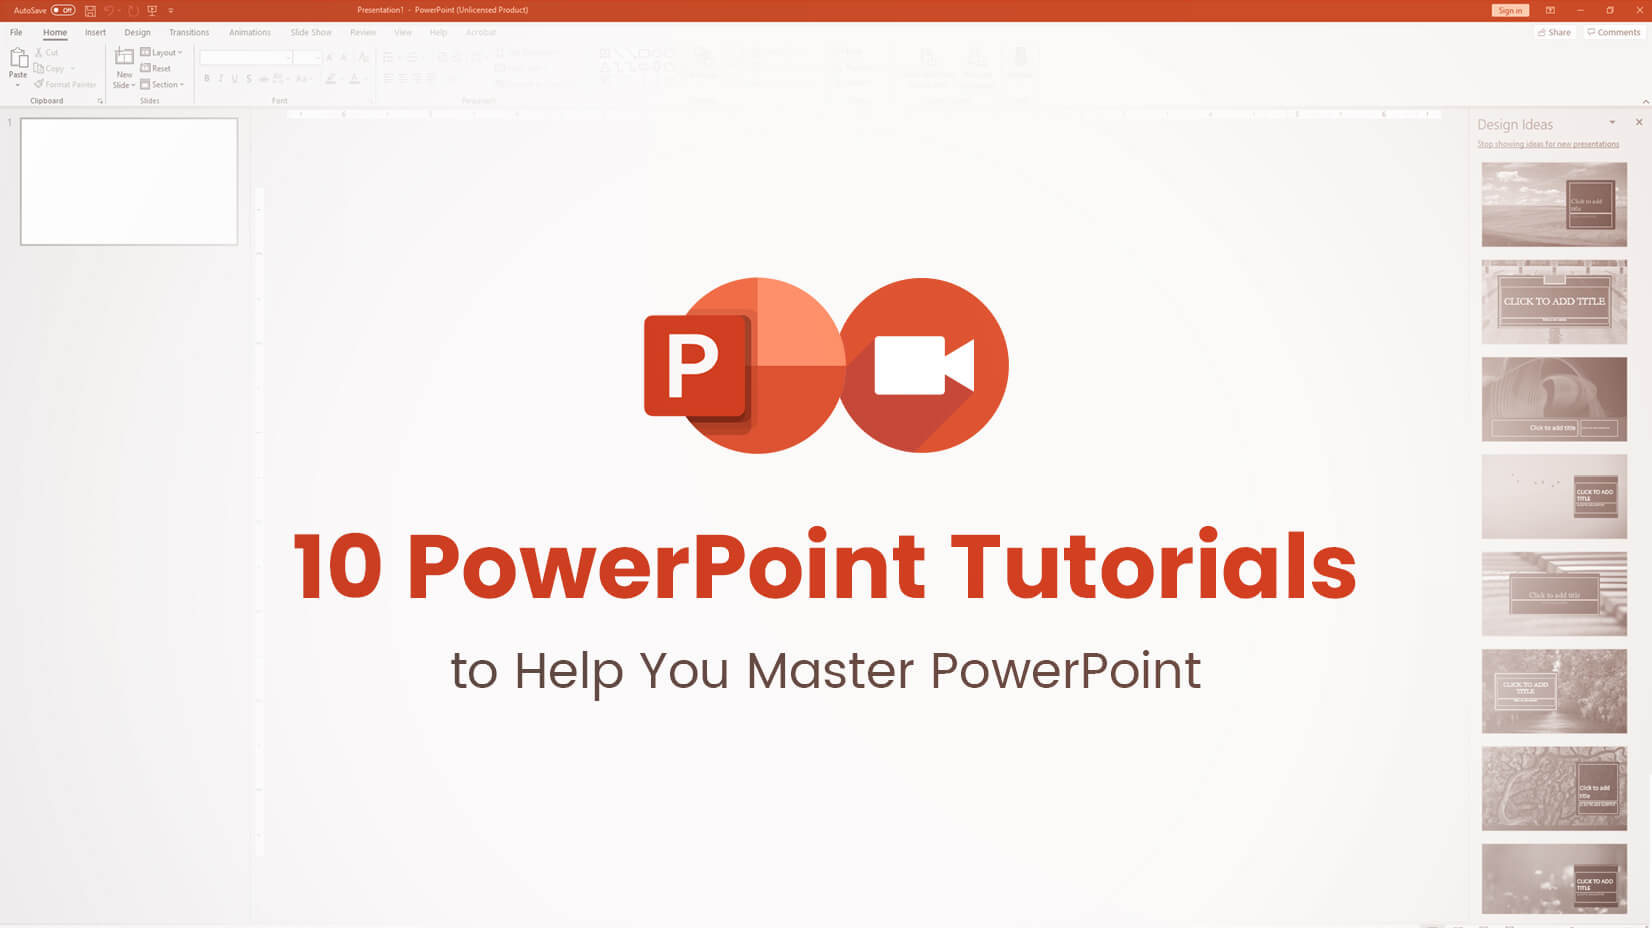 10 PowerPoint Tutorials to master PowerPoint